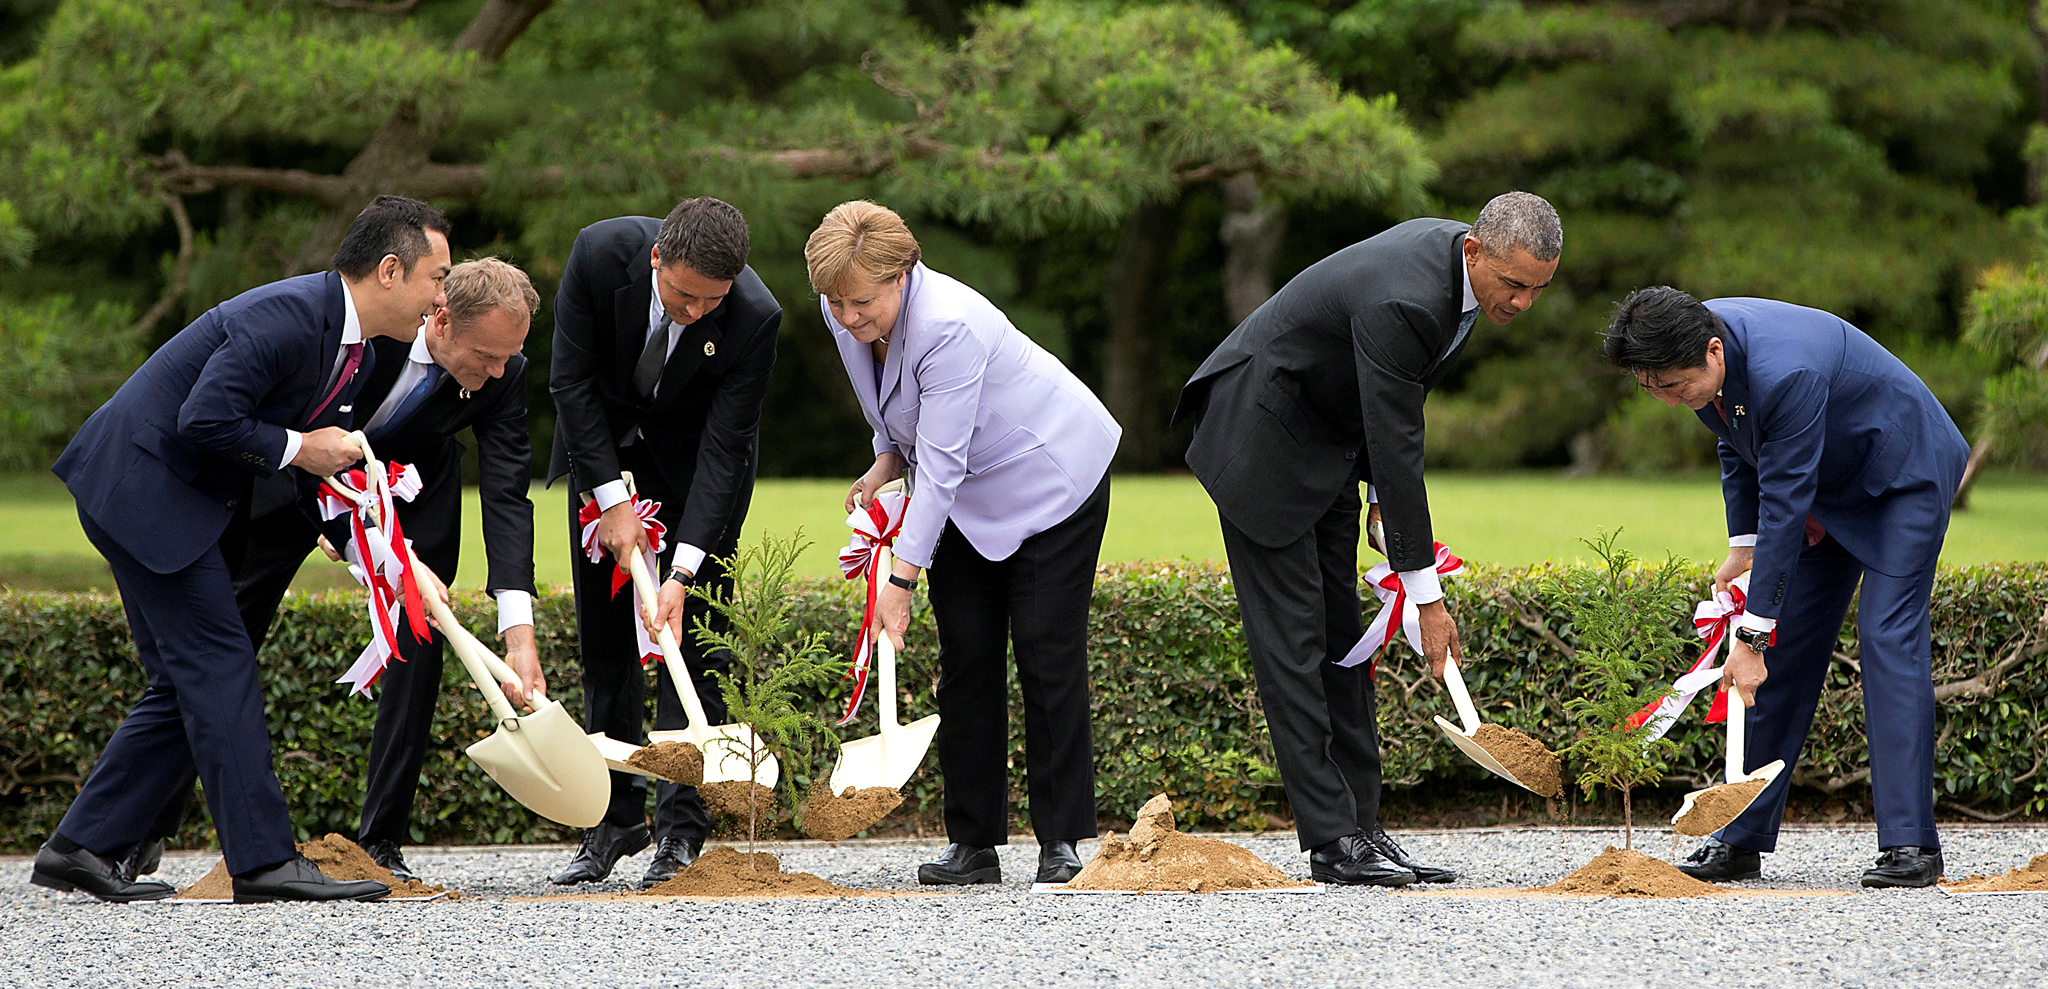 Eikei Suzuki (L-R), governor of the Mie Prefecture, European Council President Donald Tusk, Italian Prime Minister Matteo Renzi, German Chancellor Angela Merkel, U.S. President Barack Obama, and Japanese Prime Minister Shinzo Abe, participate in a tree planting ceremony as they visit the Ise Jingu shrine in Ise, Mie Prefecture, Japan May 26, 2016, as part of the G-7 Summit. REUTERS/Carolyn Kaster/Pool